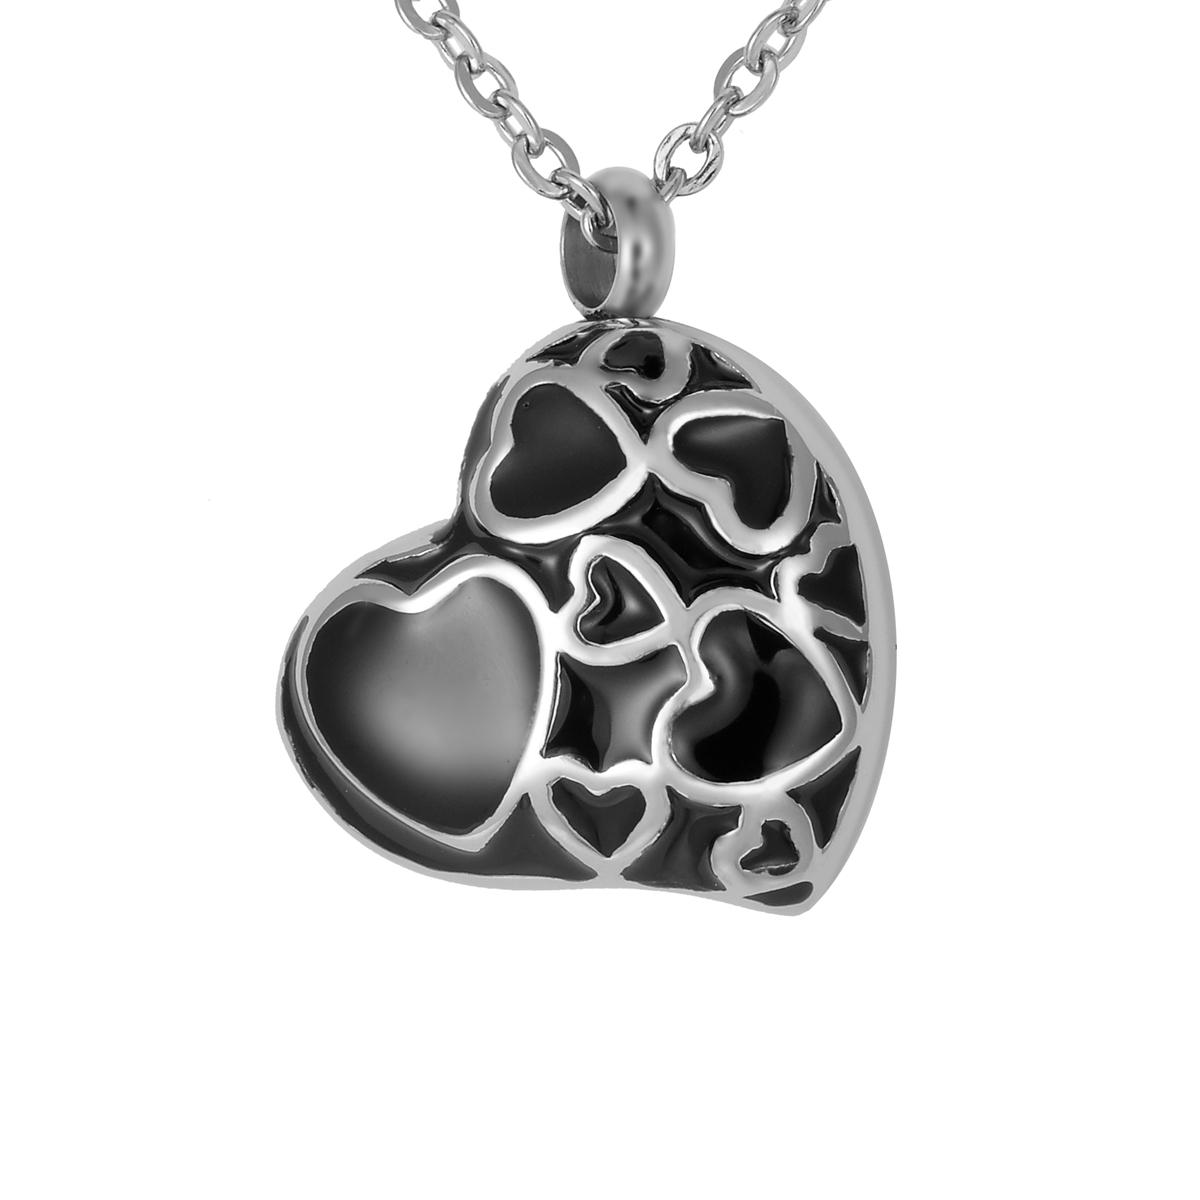 Lily Stainless Steel Silver Black Glue Love Heart Cremation Jewelry Ashes Pendant Keepsake Memorial Urn Necklace with Gift Bag And Chain